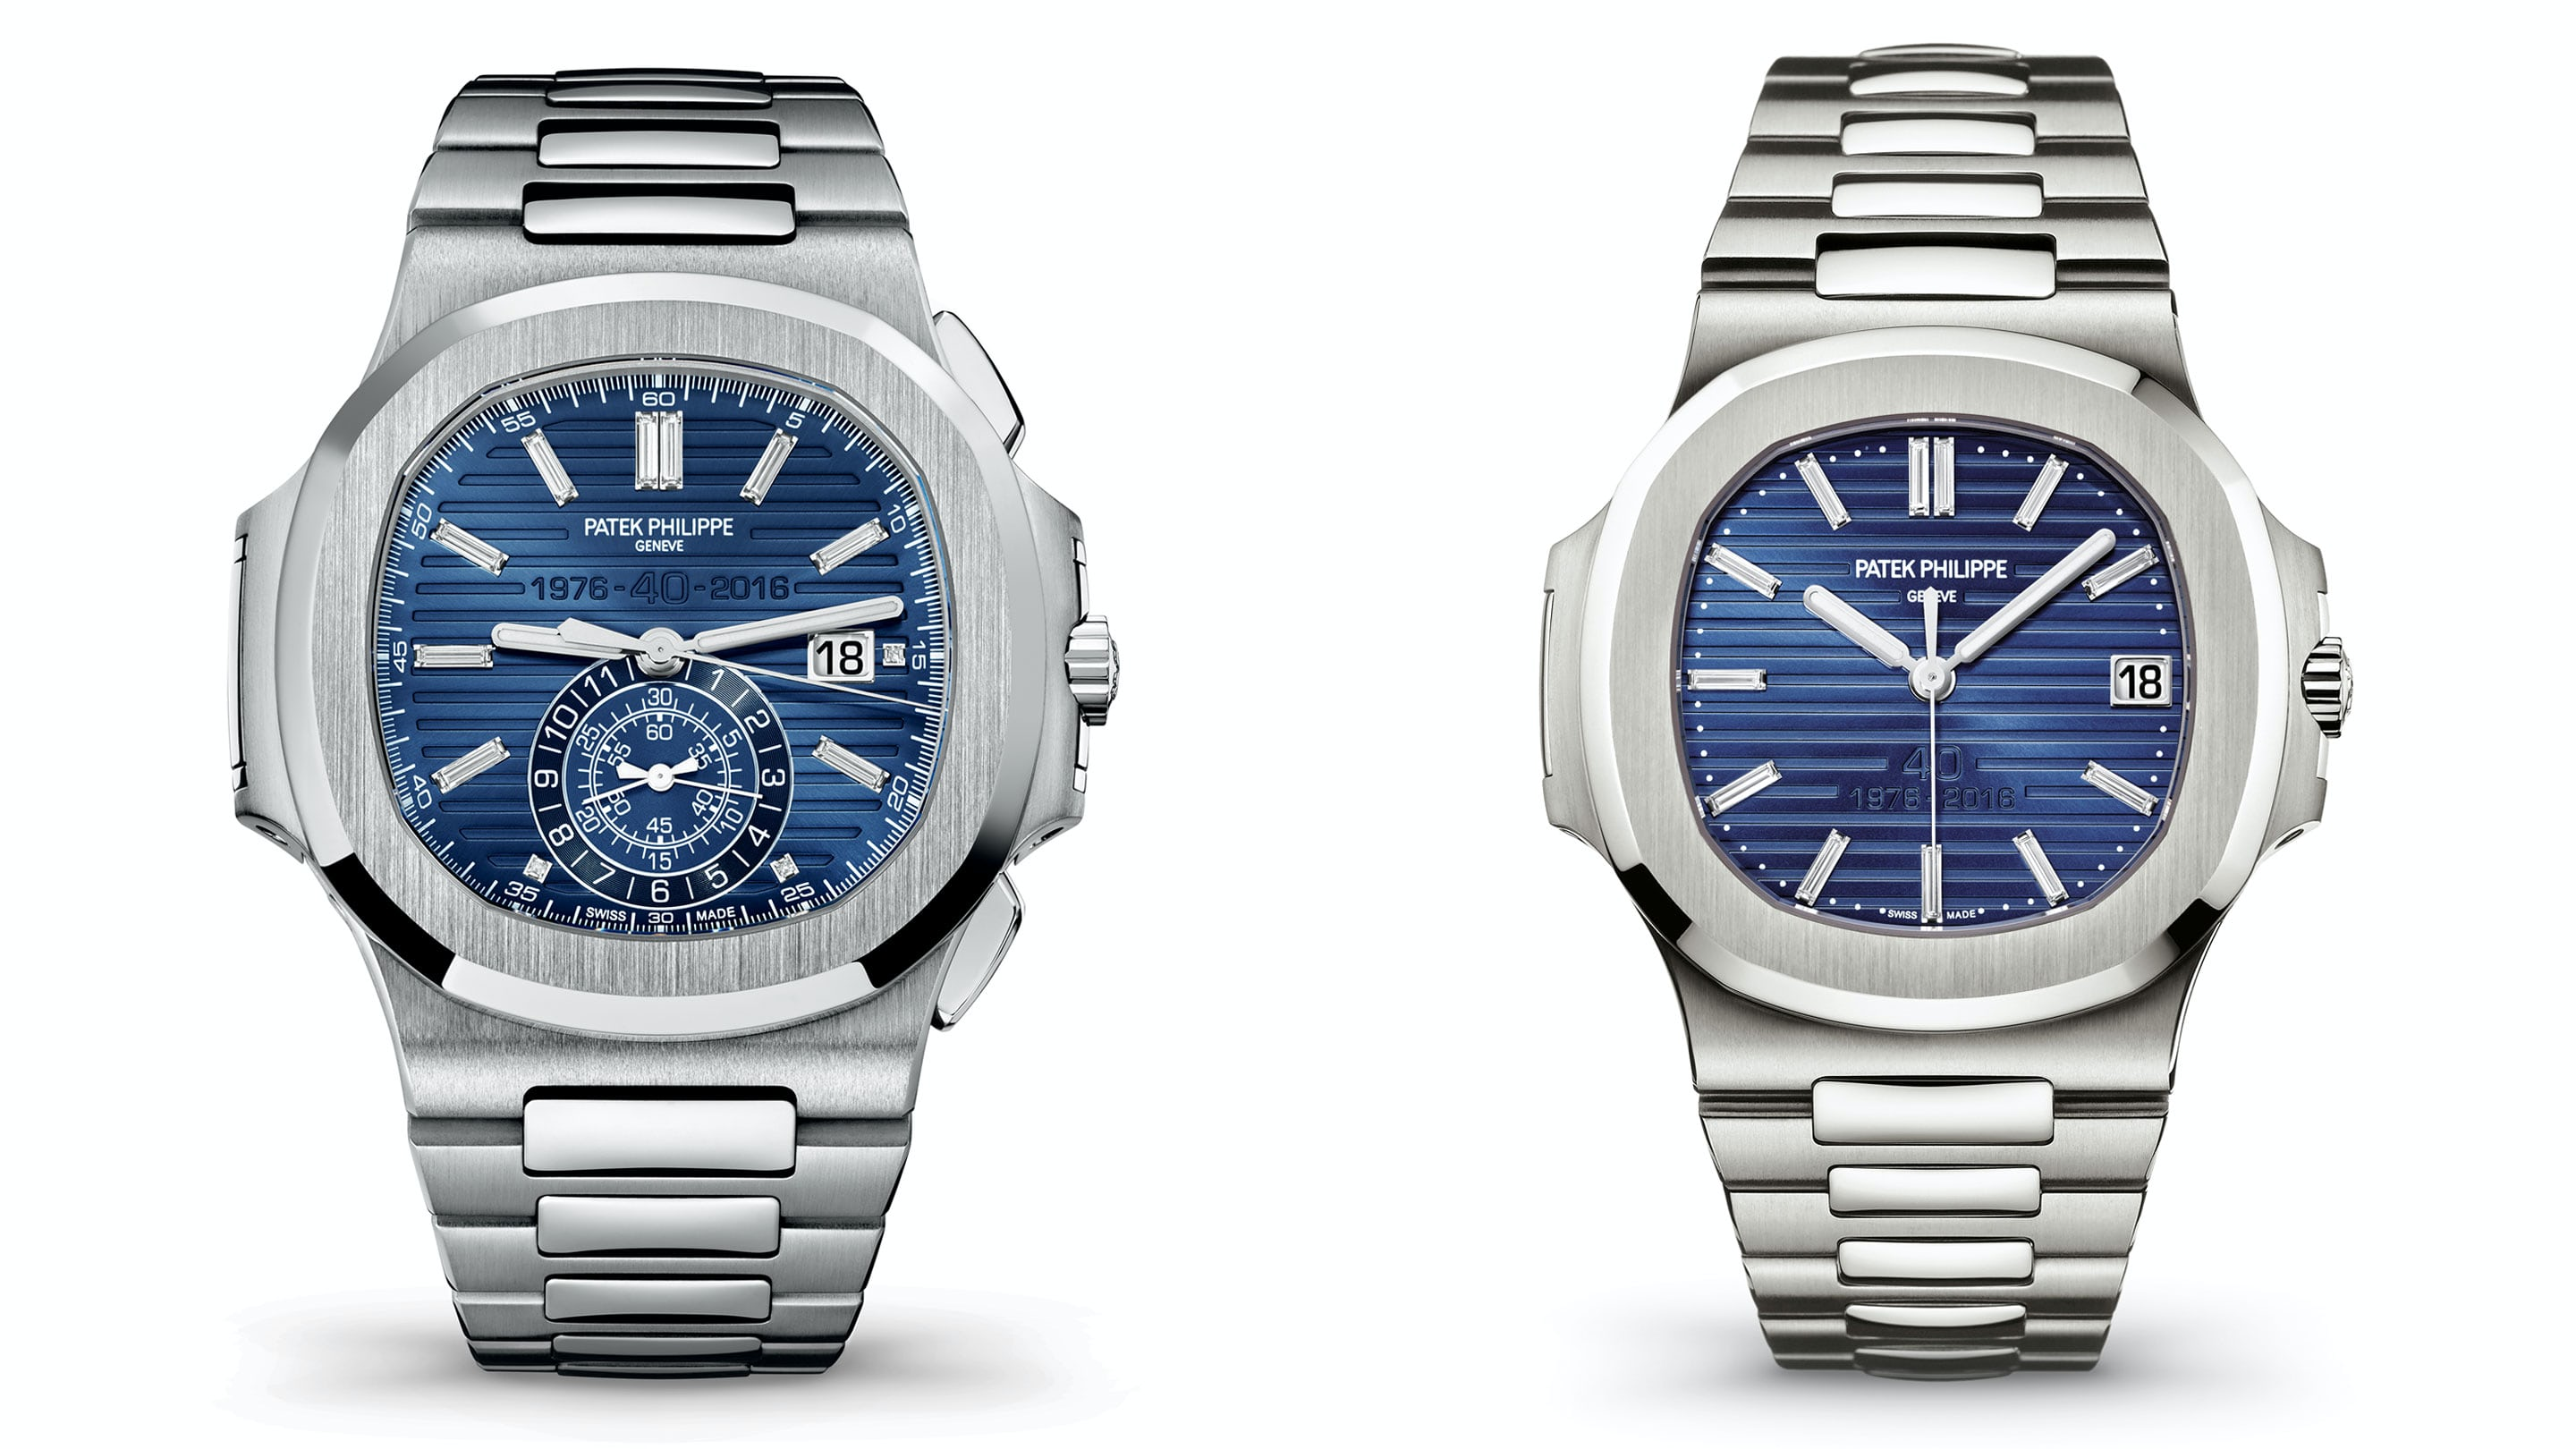 Introducing The Patek Philippe 5976 1g And The 5711 1p Two Special